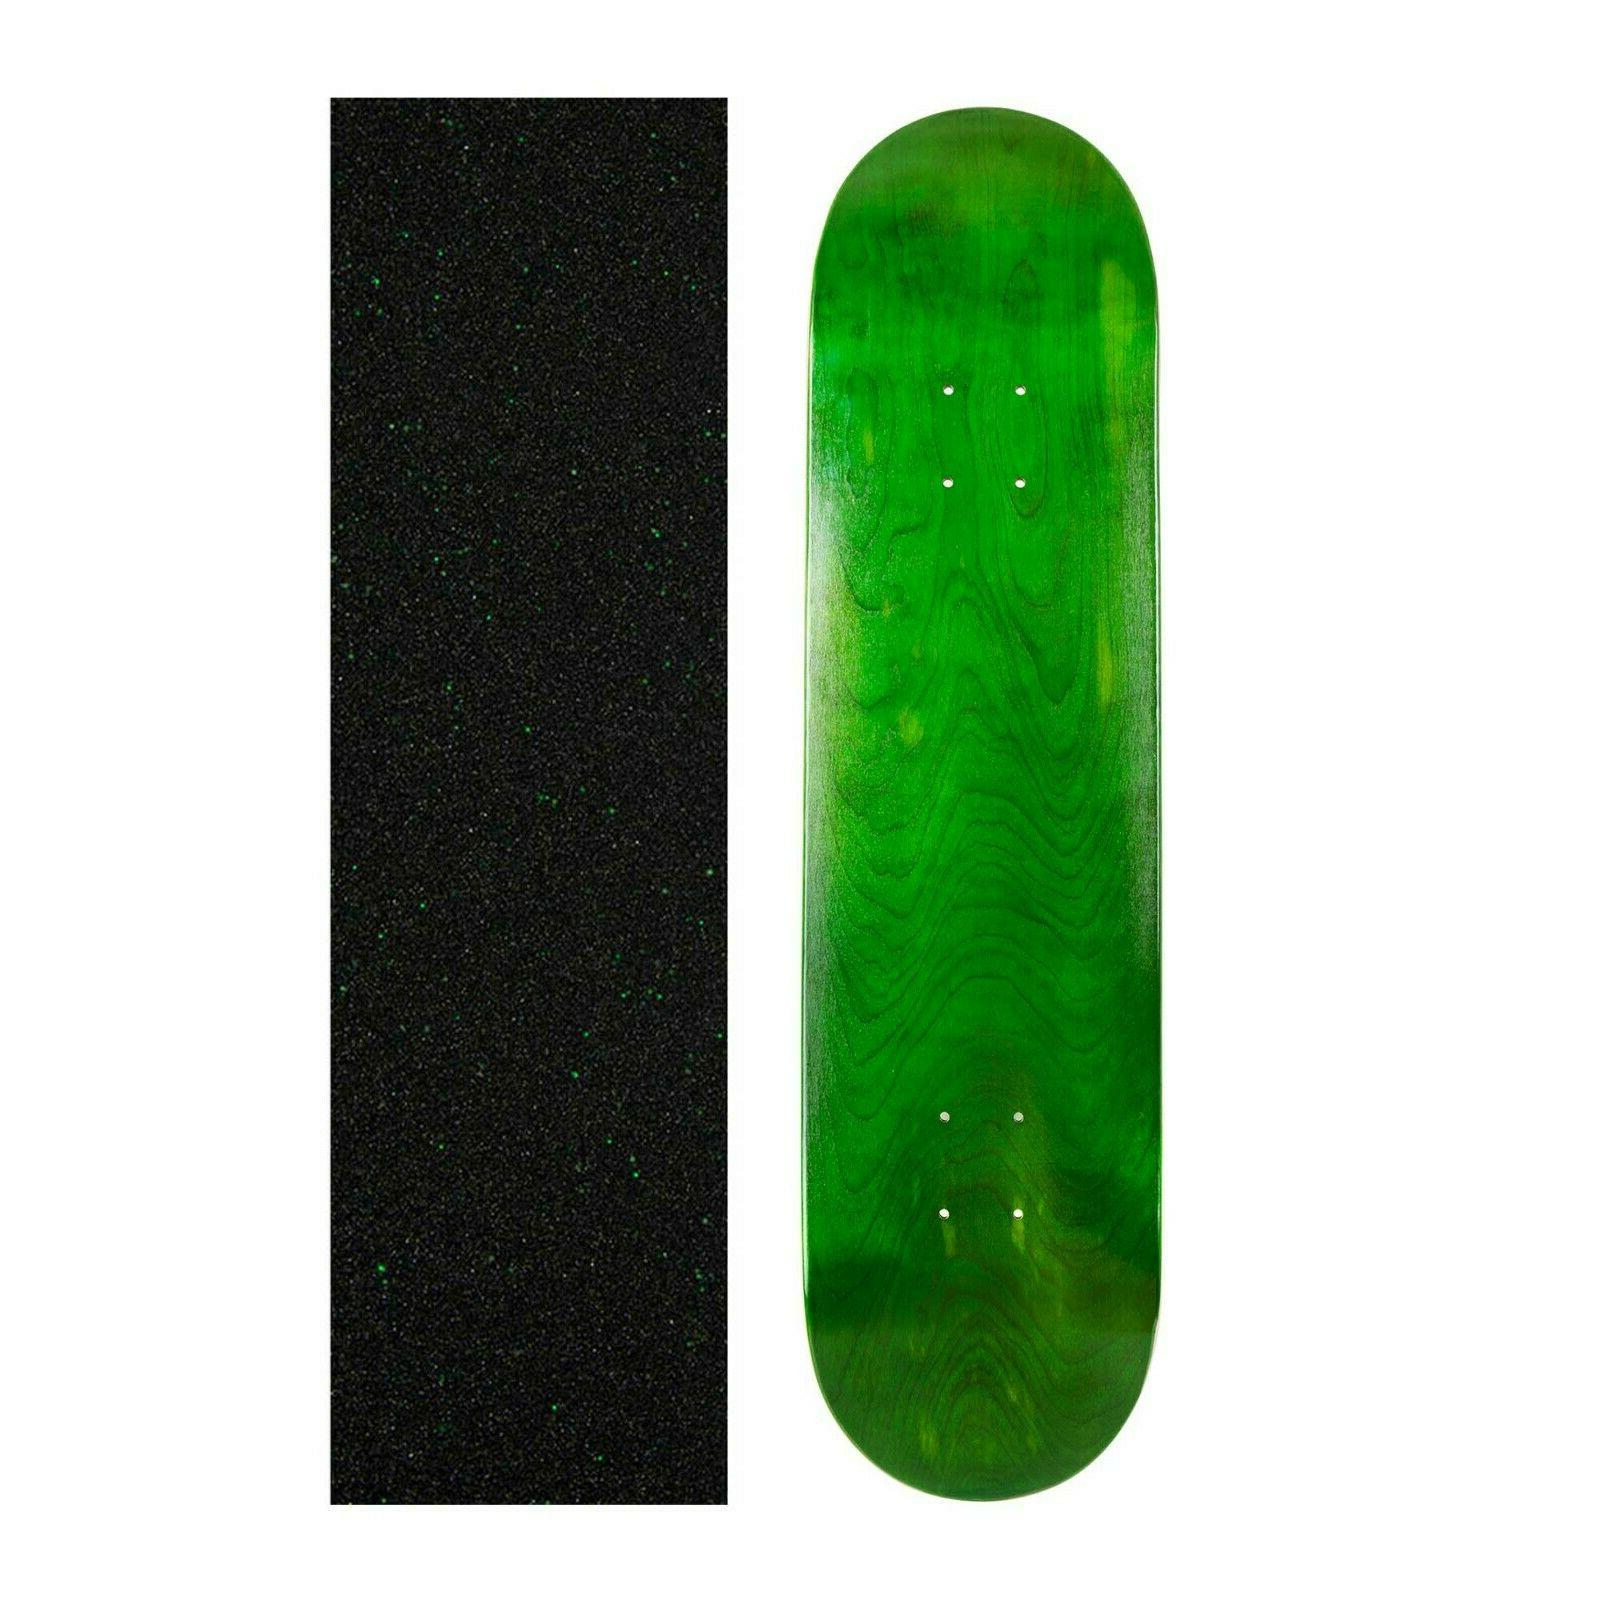 Cal Blank Maple Deck Mob Tape Multiple Colors